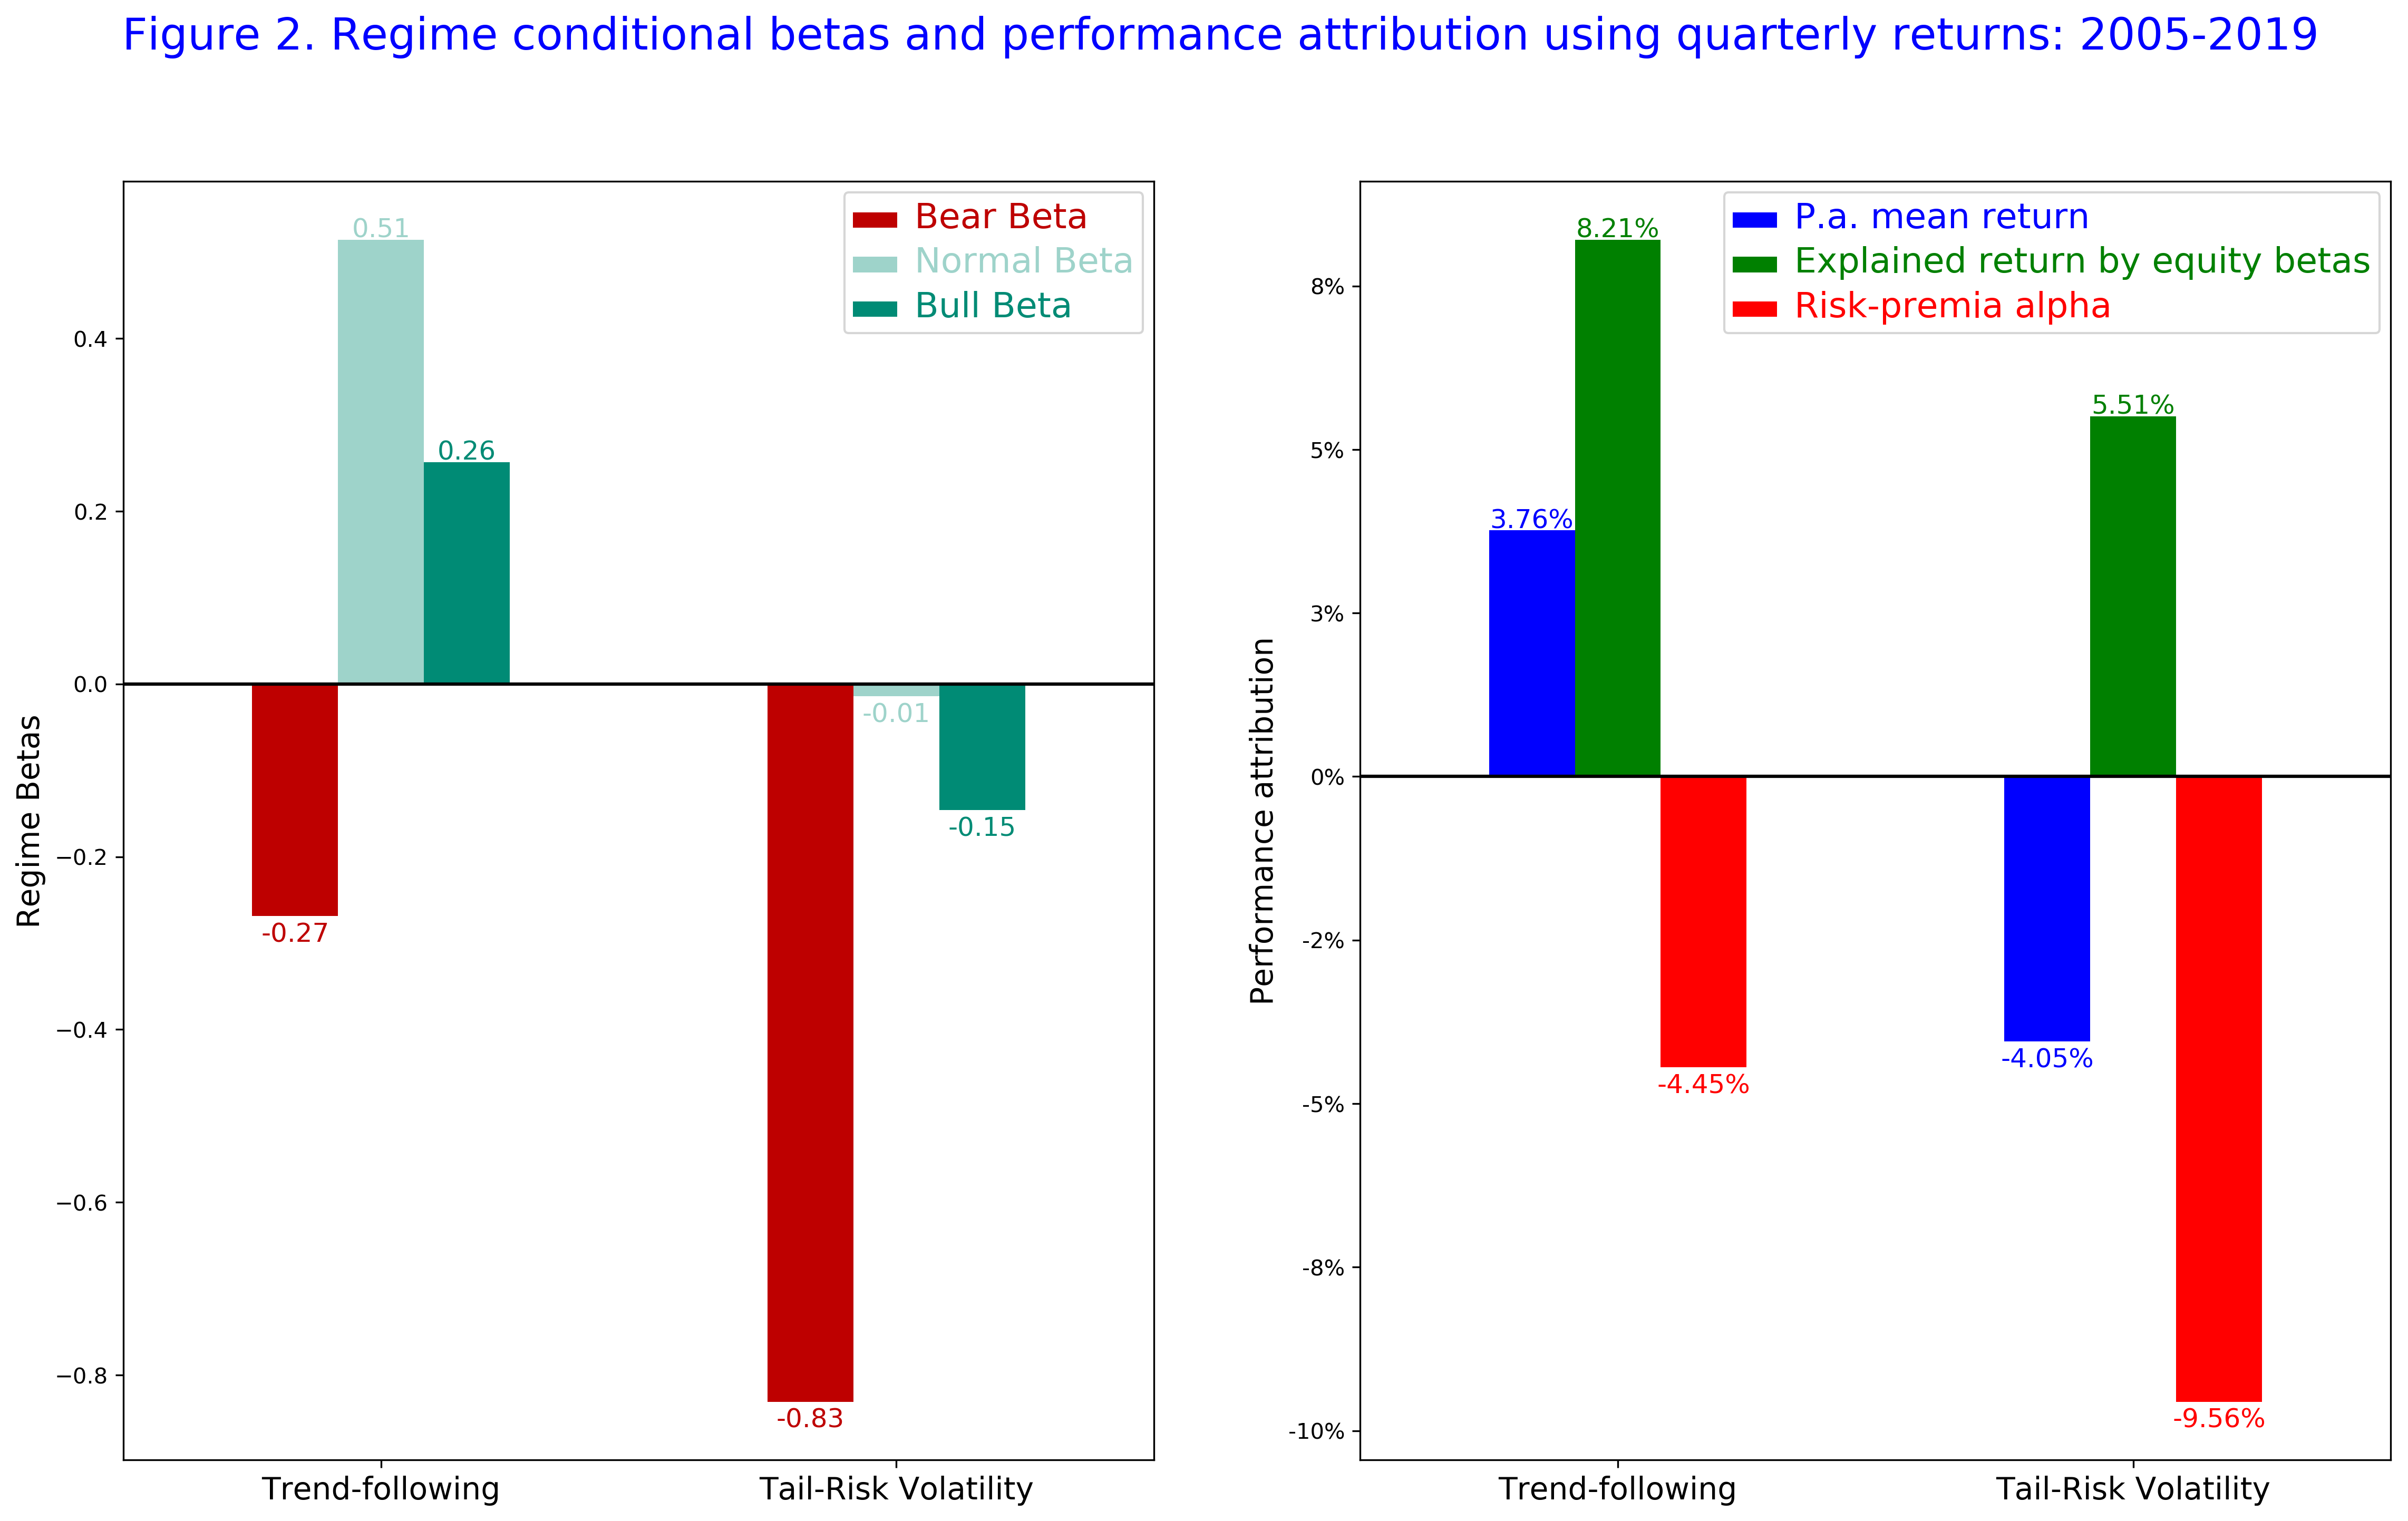 Figure 2 Regime conditional betas and performance attribution using quarterly returns 2005-2019